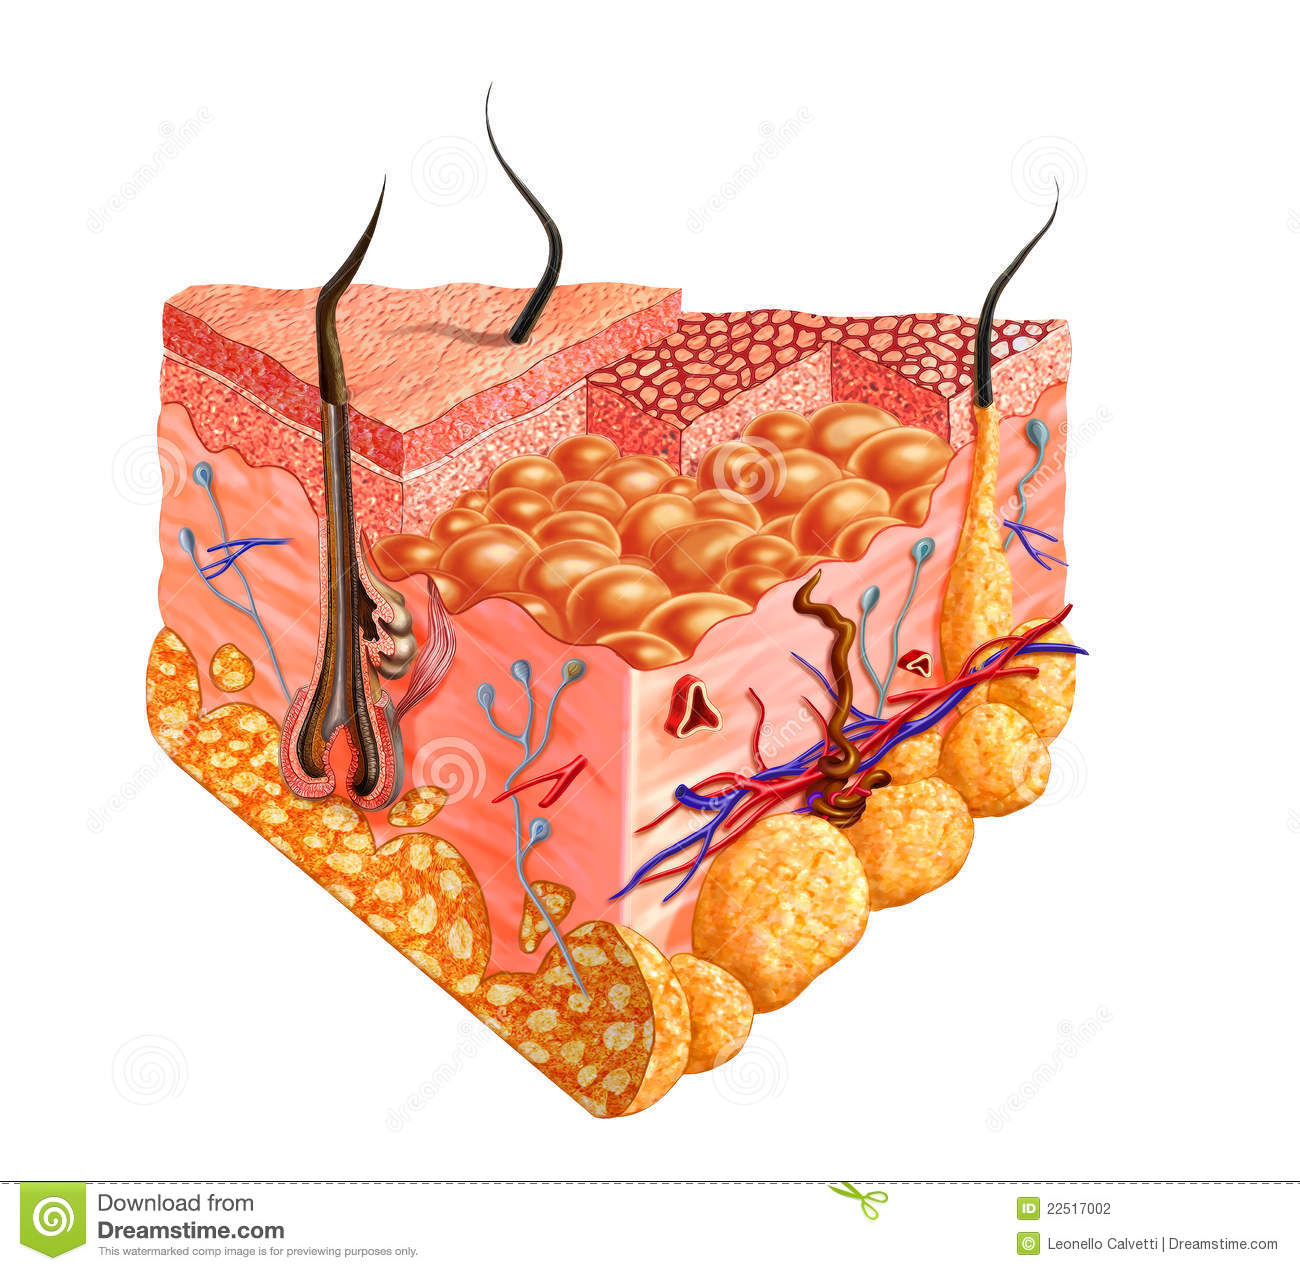 Human Skin Cutaway Diagram With Several Details Stock